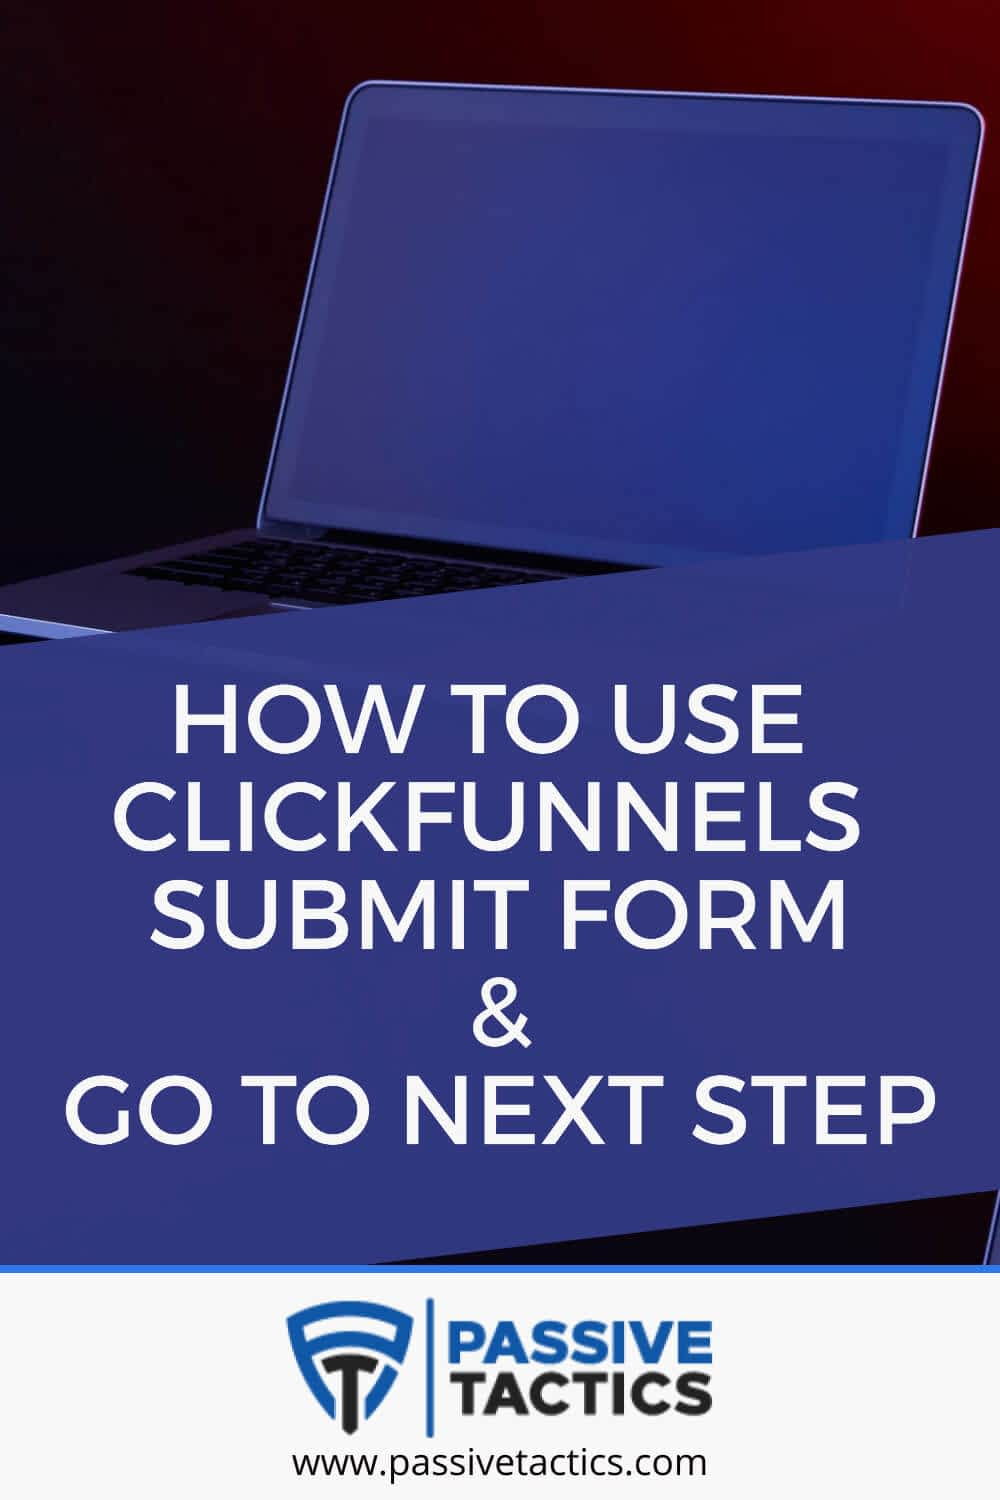 How To Use ClickFunnels Submit Form And Go To Next Step